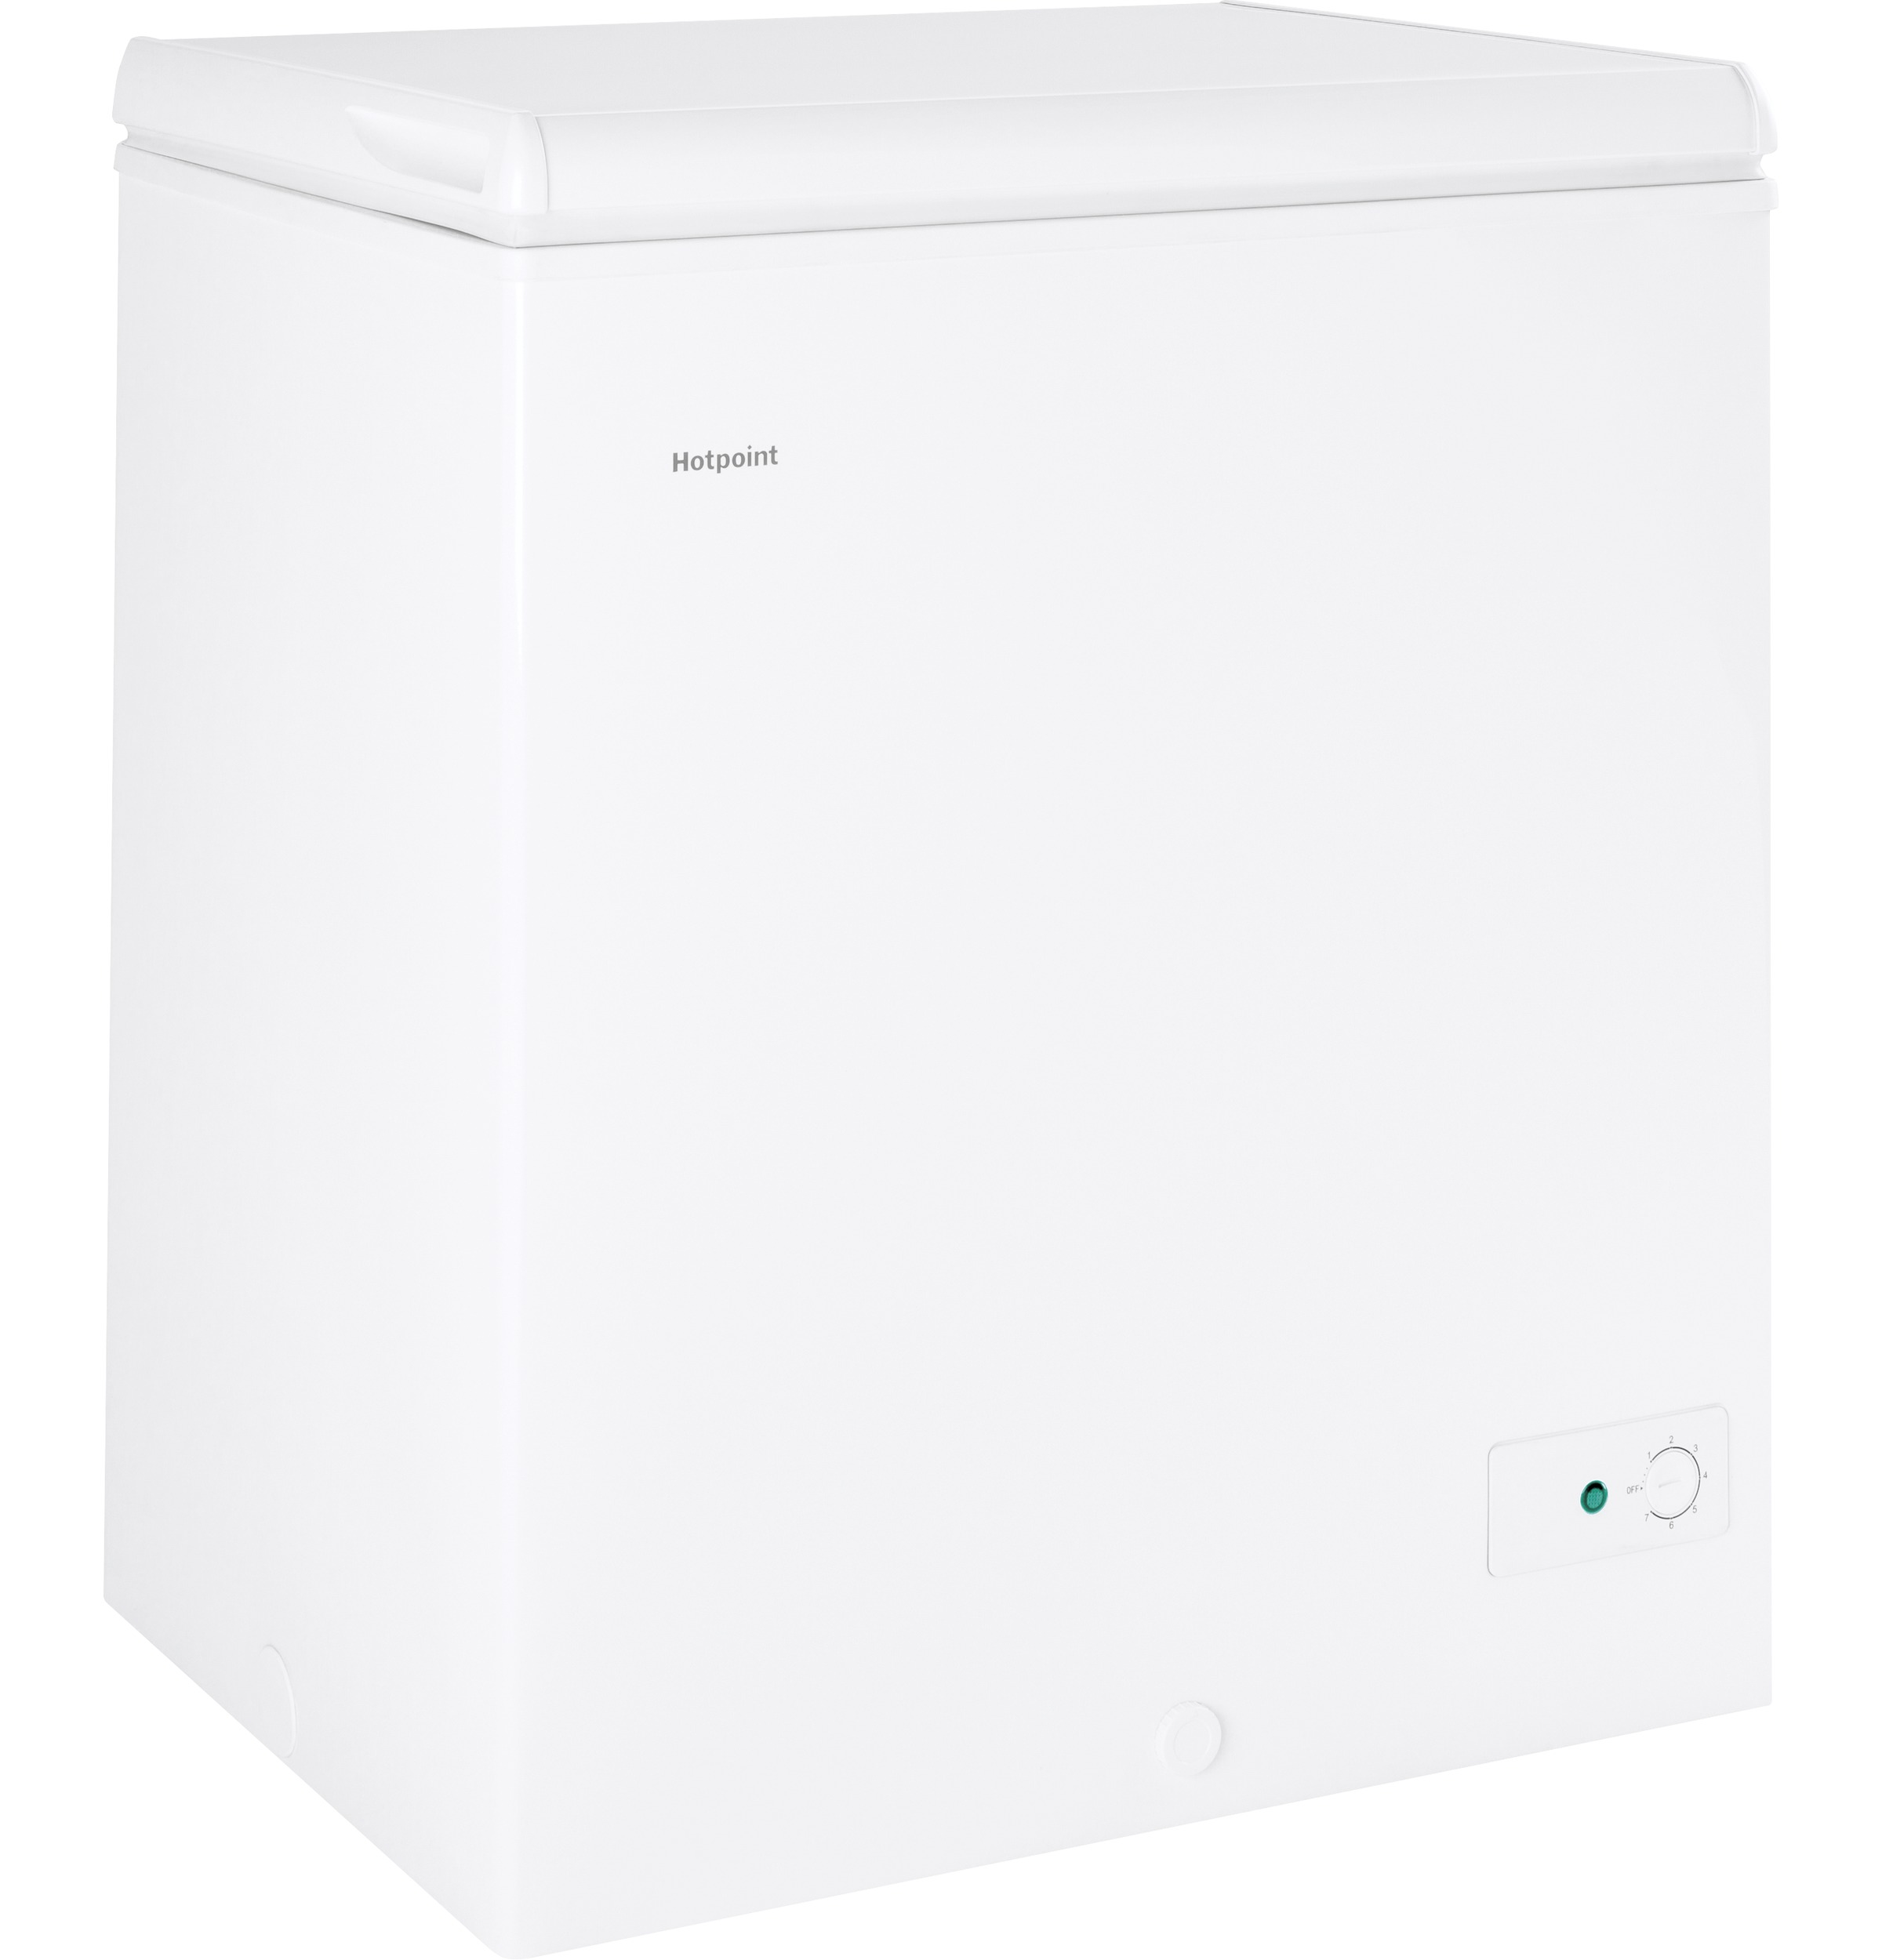 Model: HCM5SMWW | Hotpoint® 5.1 Cu. Ft. Manual Defrost Chest Freezer